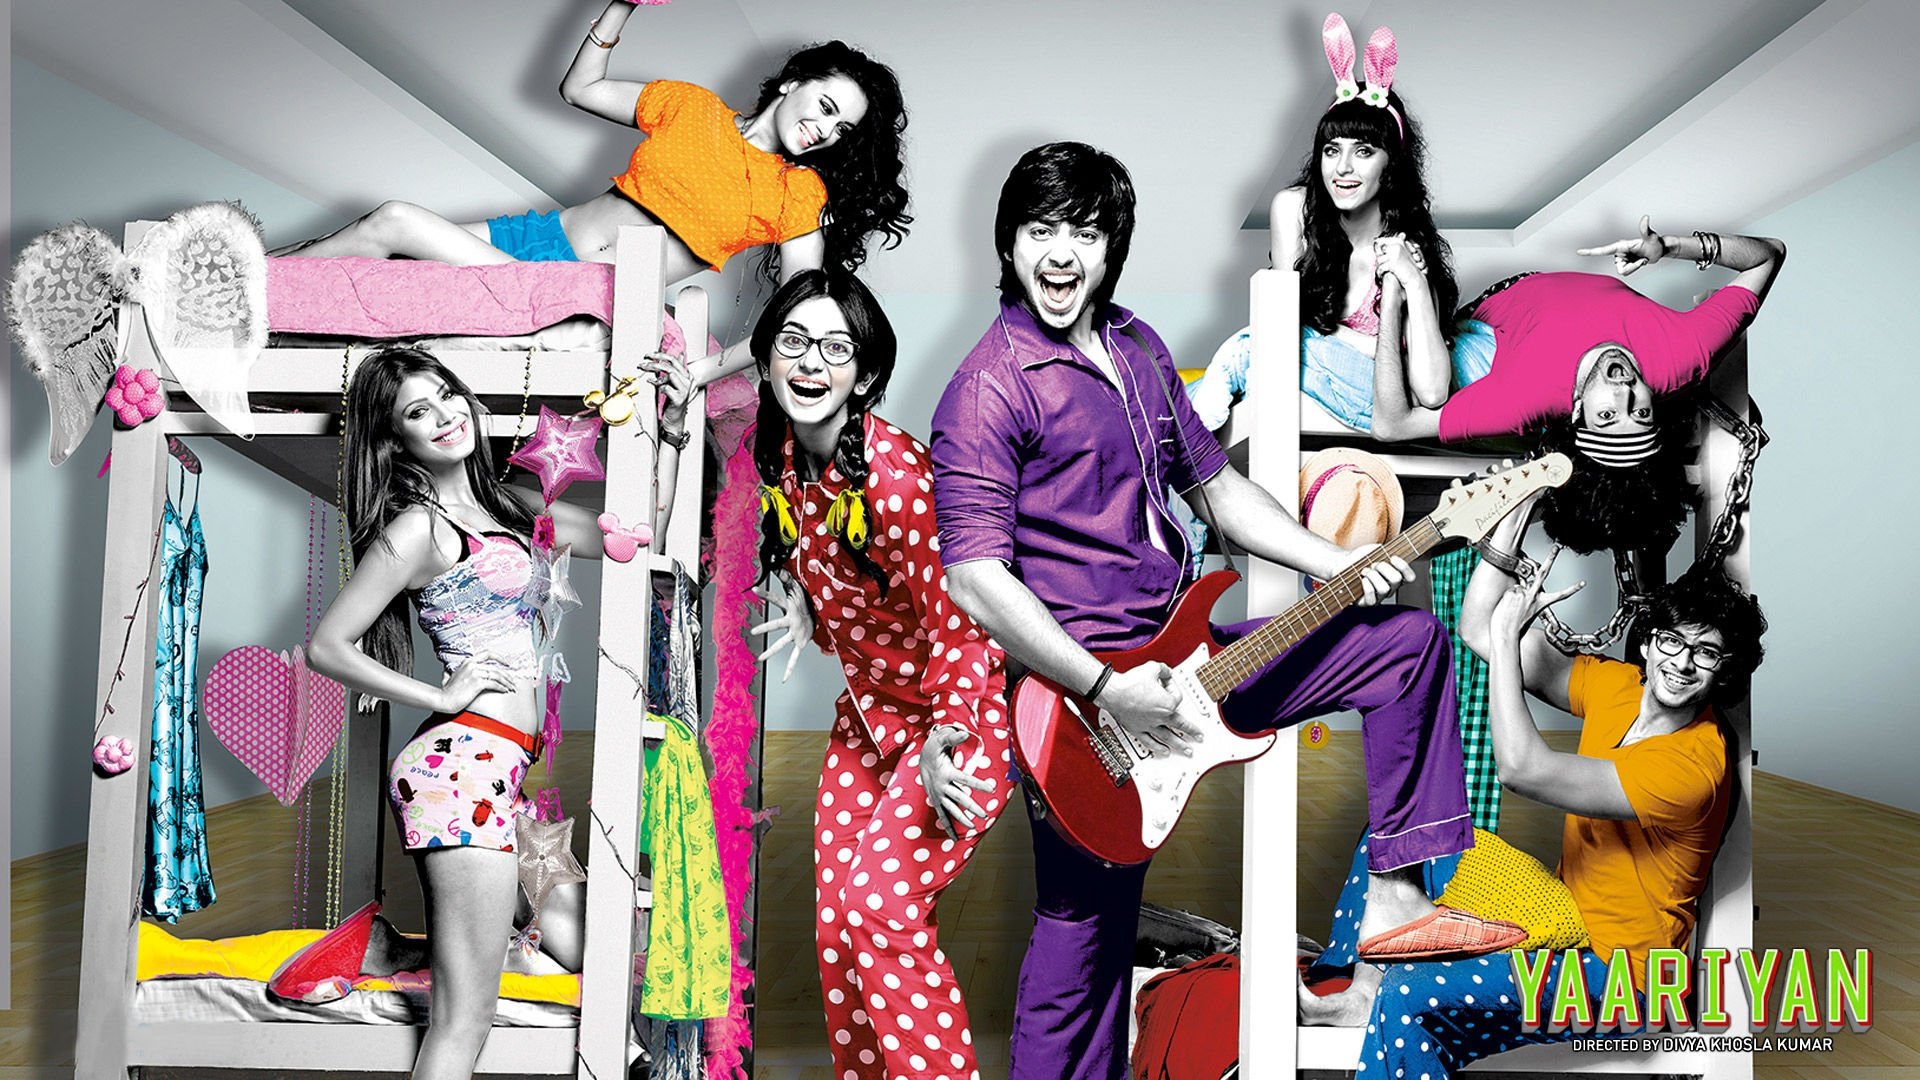 Hd wallpaper yaariyan - Youth Movie Yaariyan Images Yaariyan Poster Hd Wallpaper And Background Photos